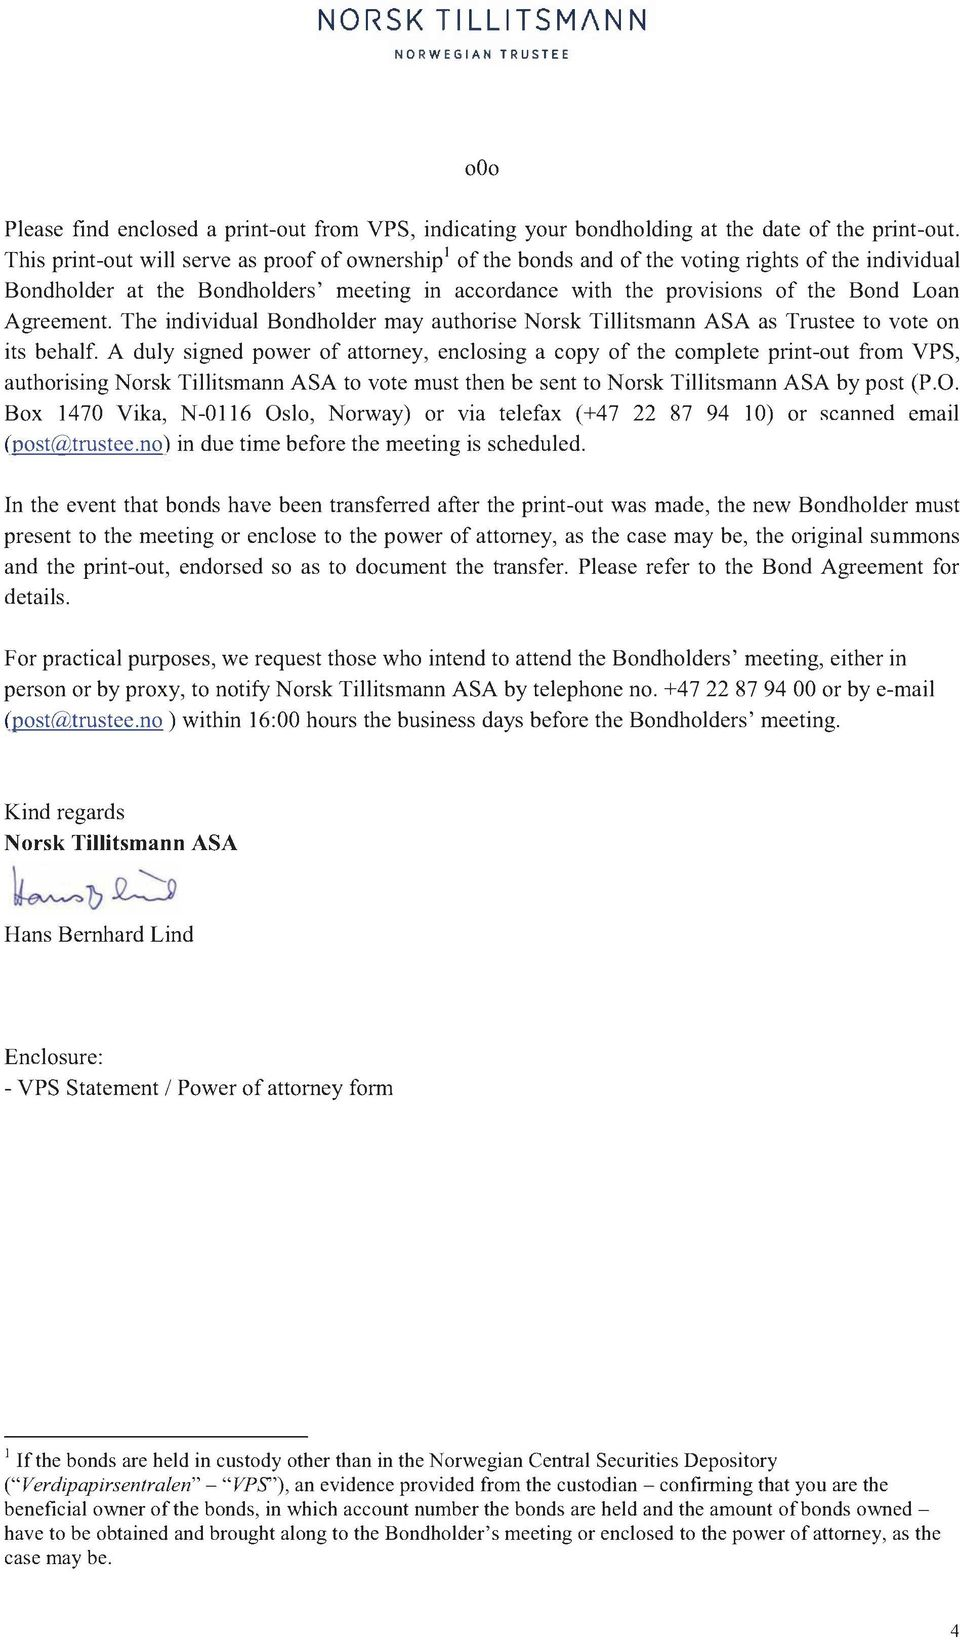 Agreement. The individual Bondholder may authorise Norsk Tillitsmann ASA as Trustee to vote on its behalf.